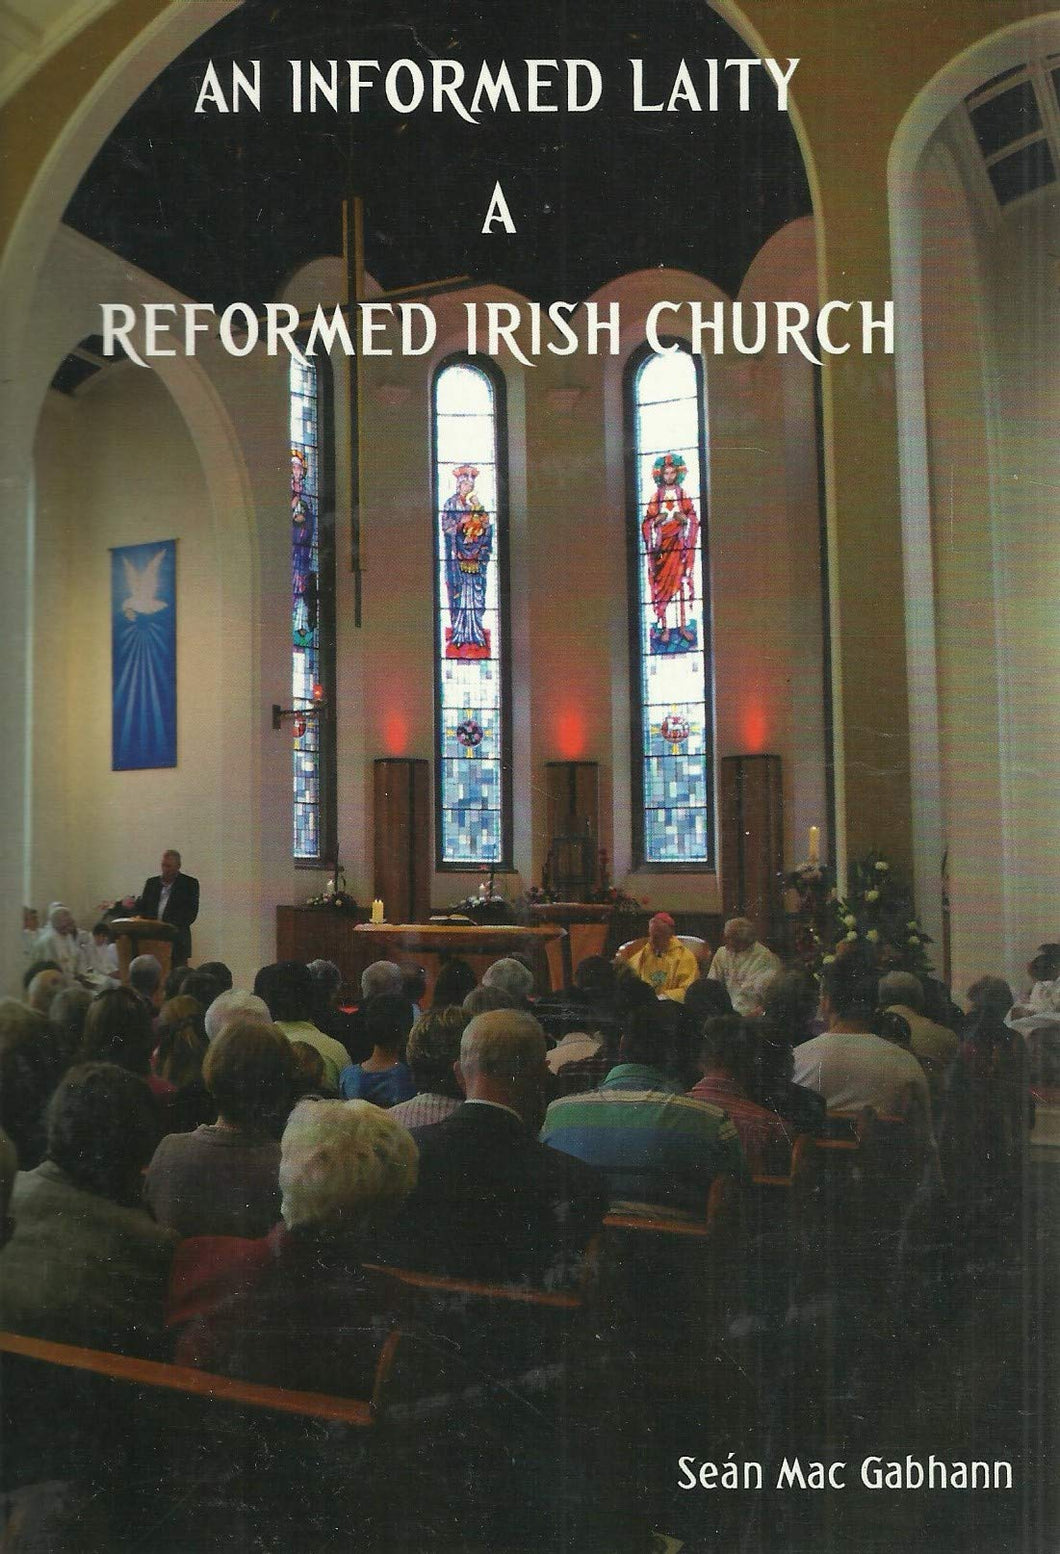 An Informed Laity: A Reformed Irish Church